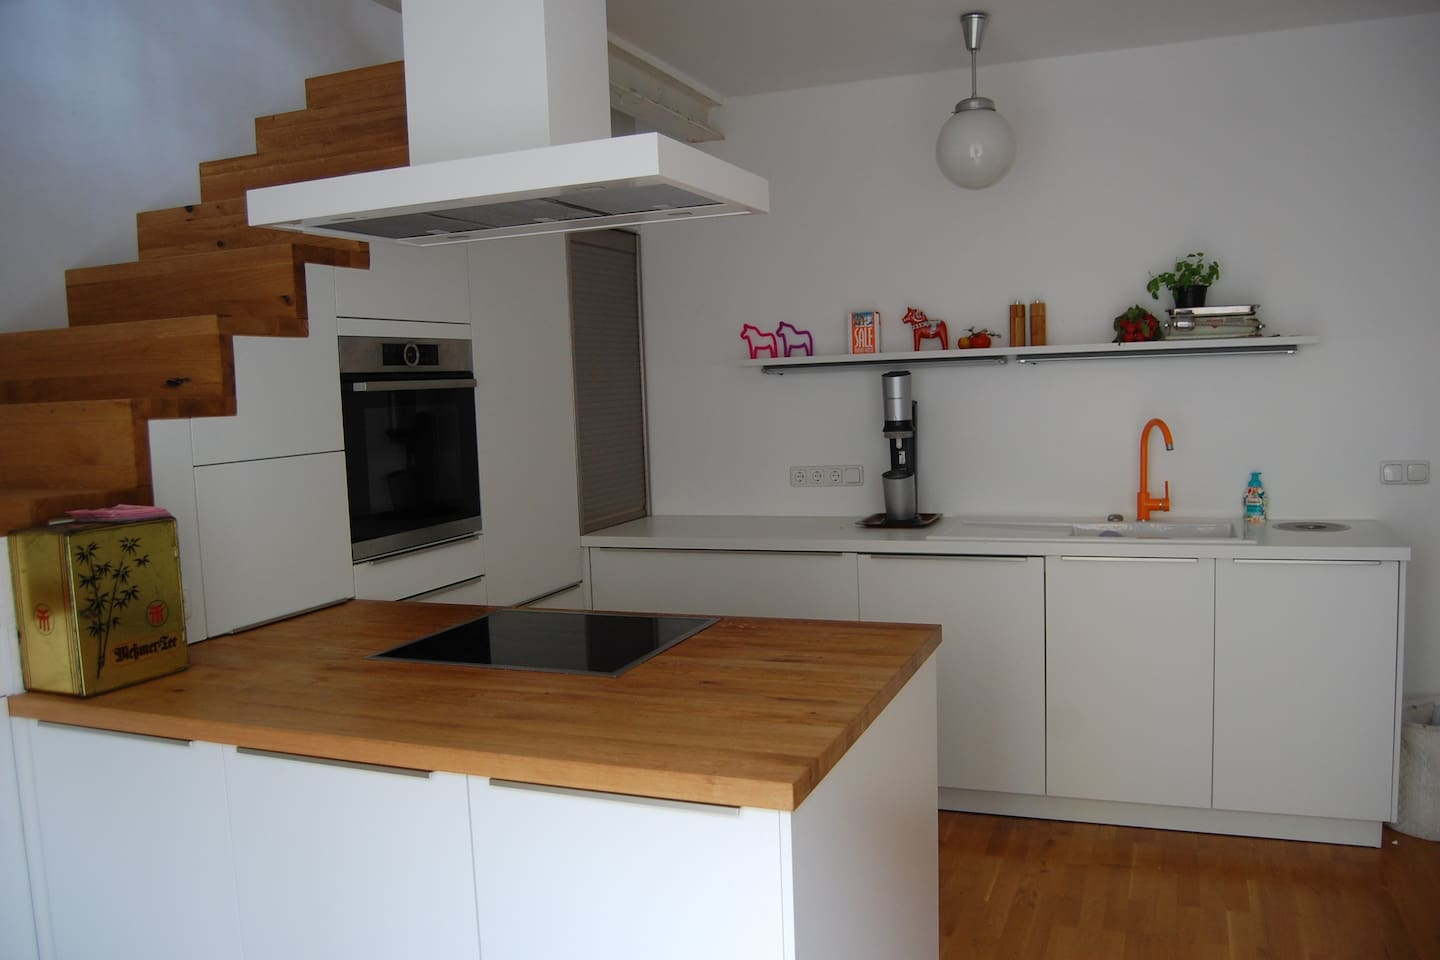 large modern kitchen in ground floor with stair case to living room in first floor